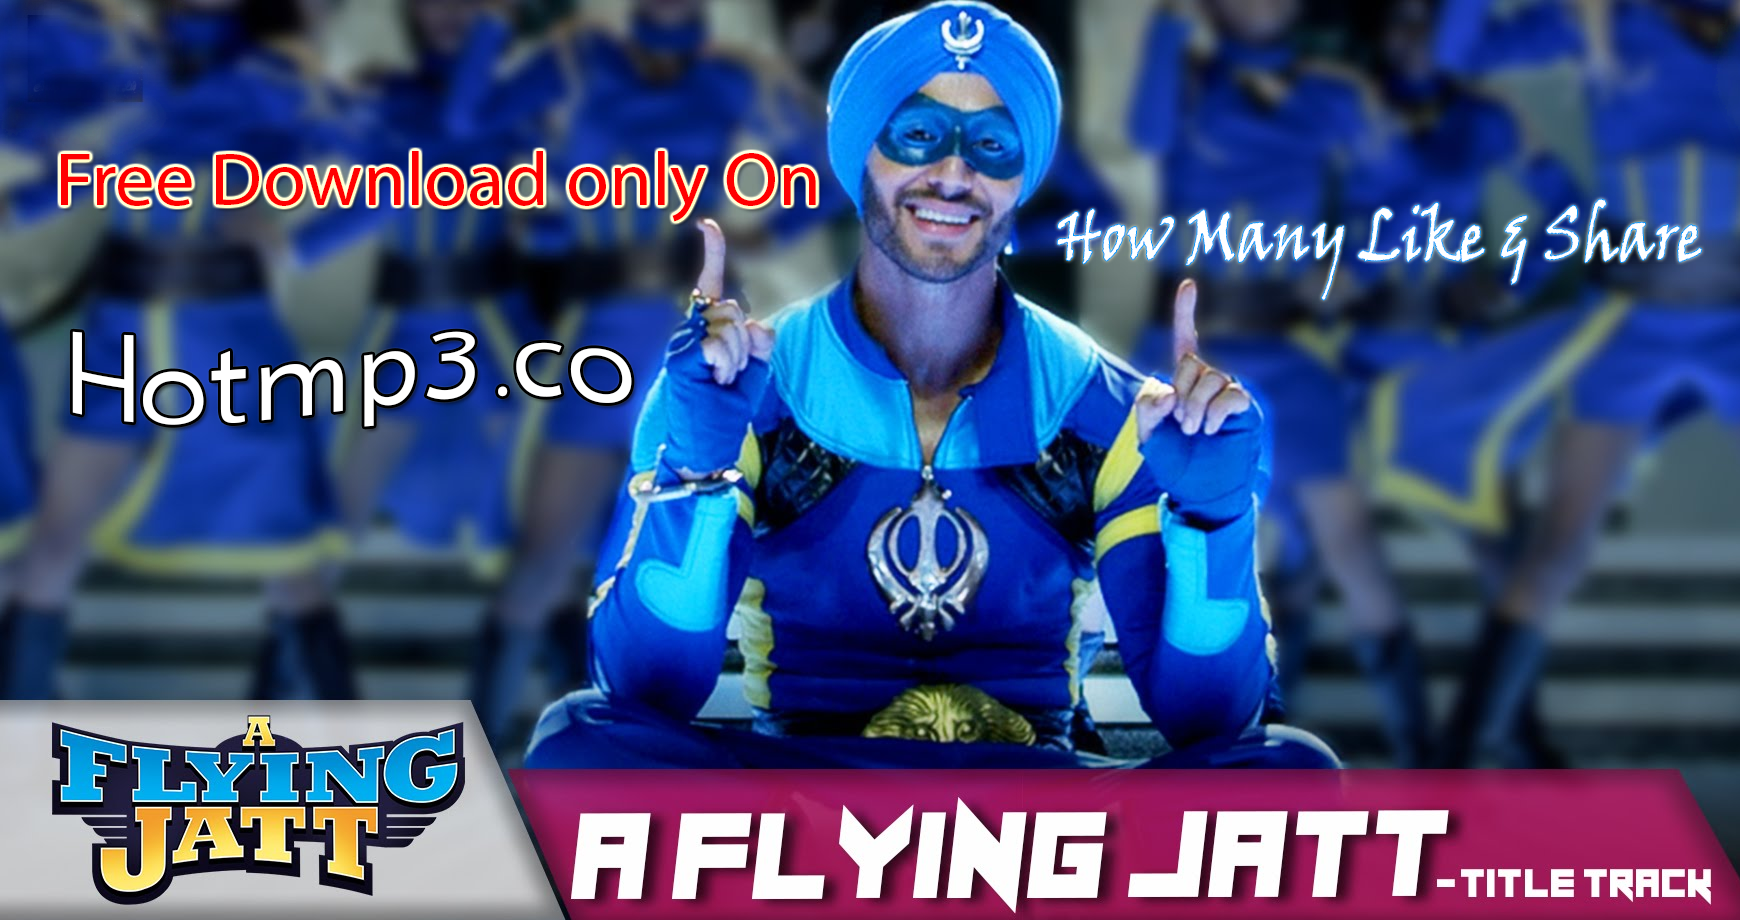 New Upcoming Movie A Flying Jatt Songs Free